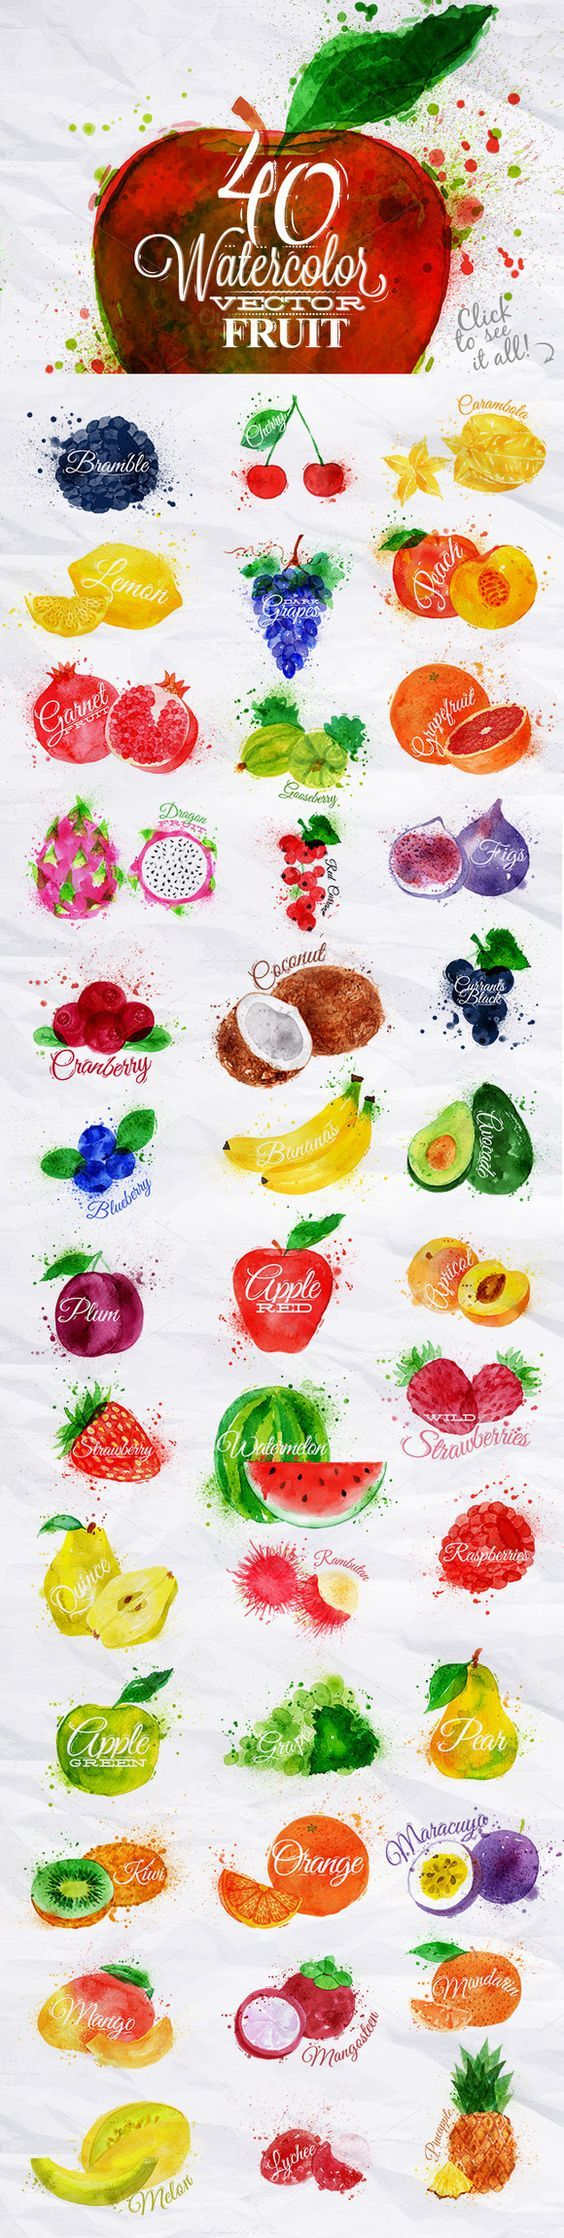 Fruit Watercolor by Anna on Creative Market: